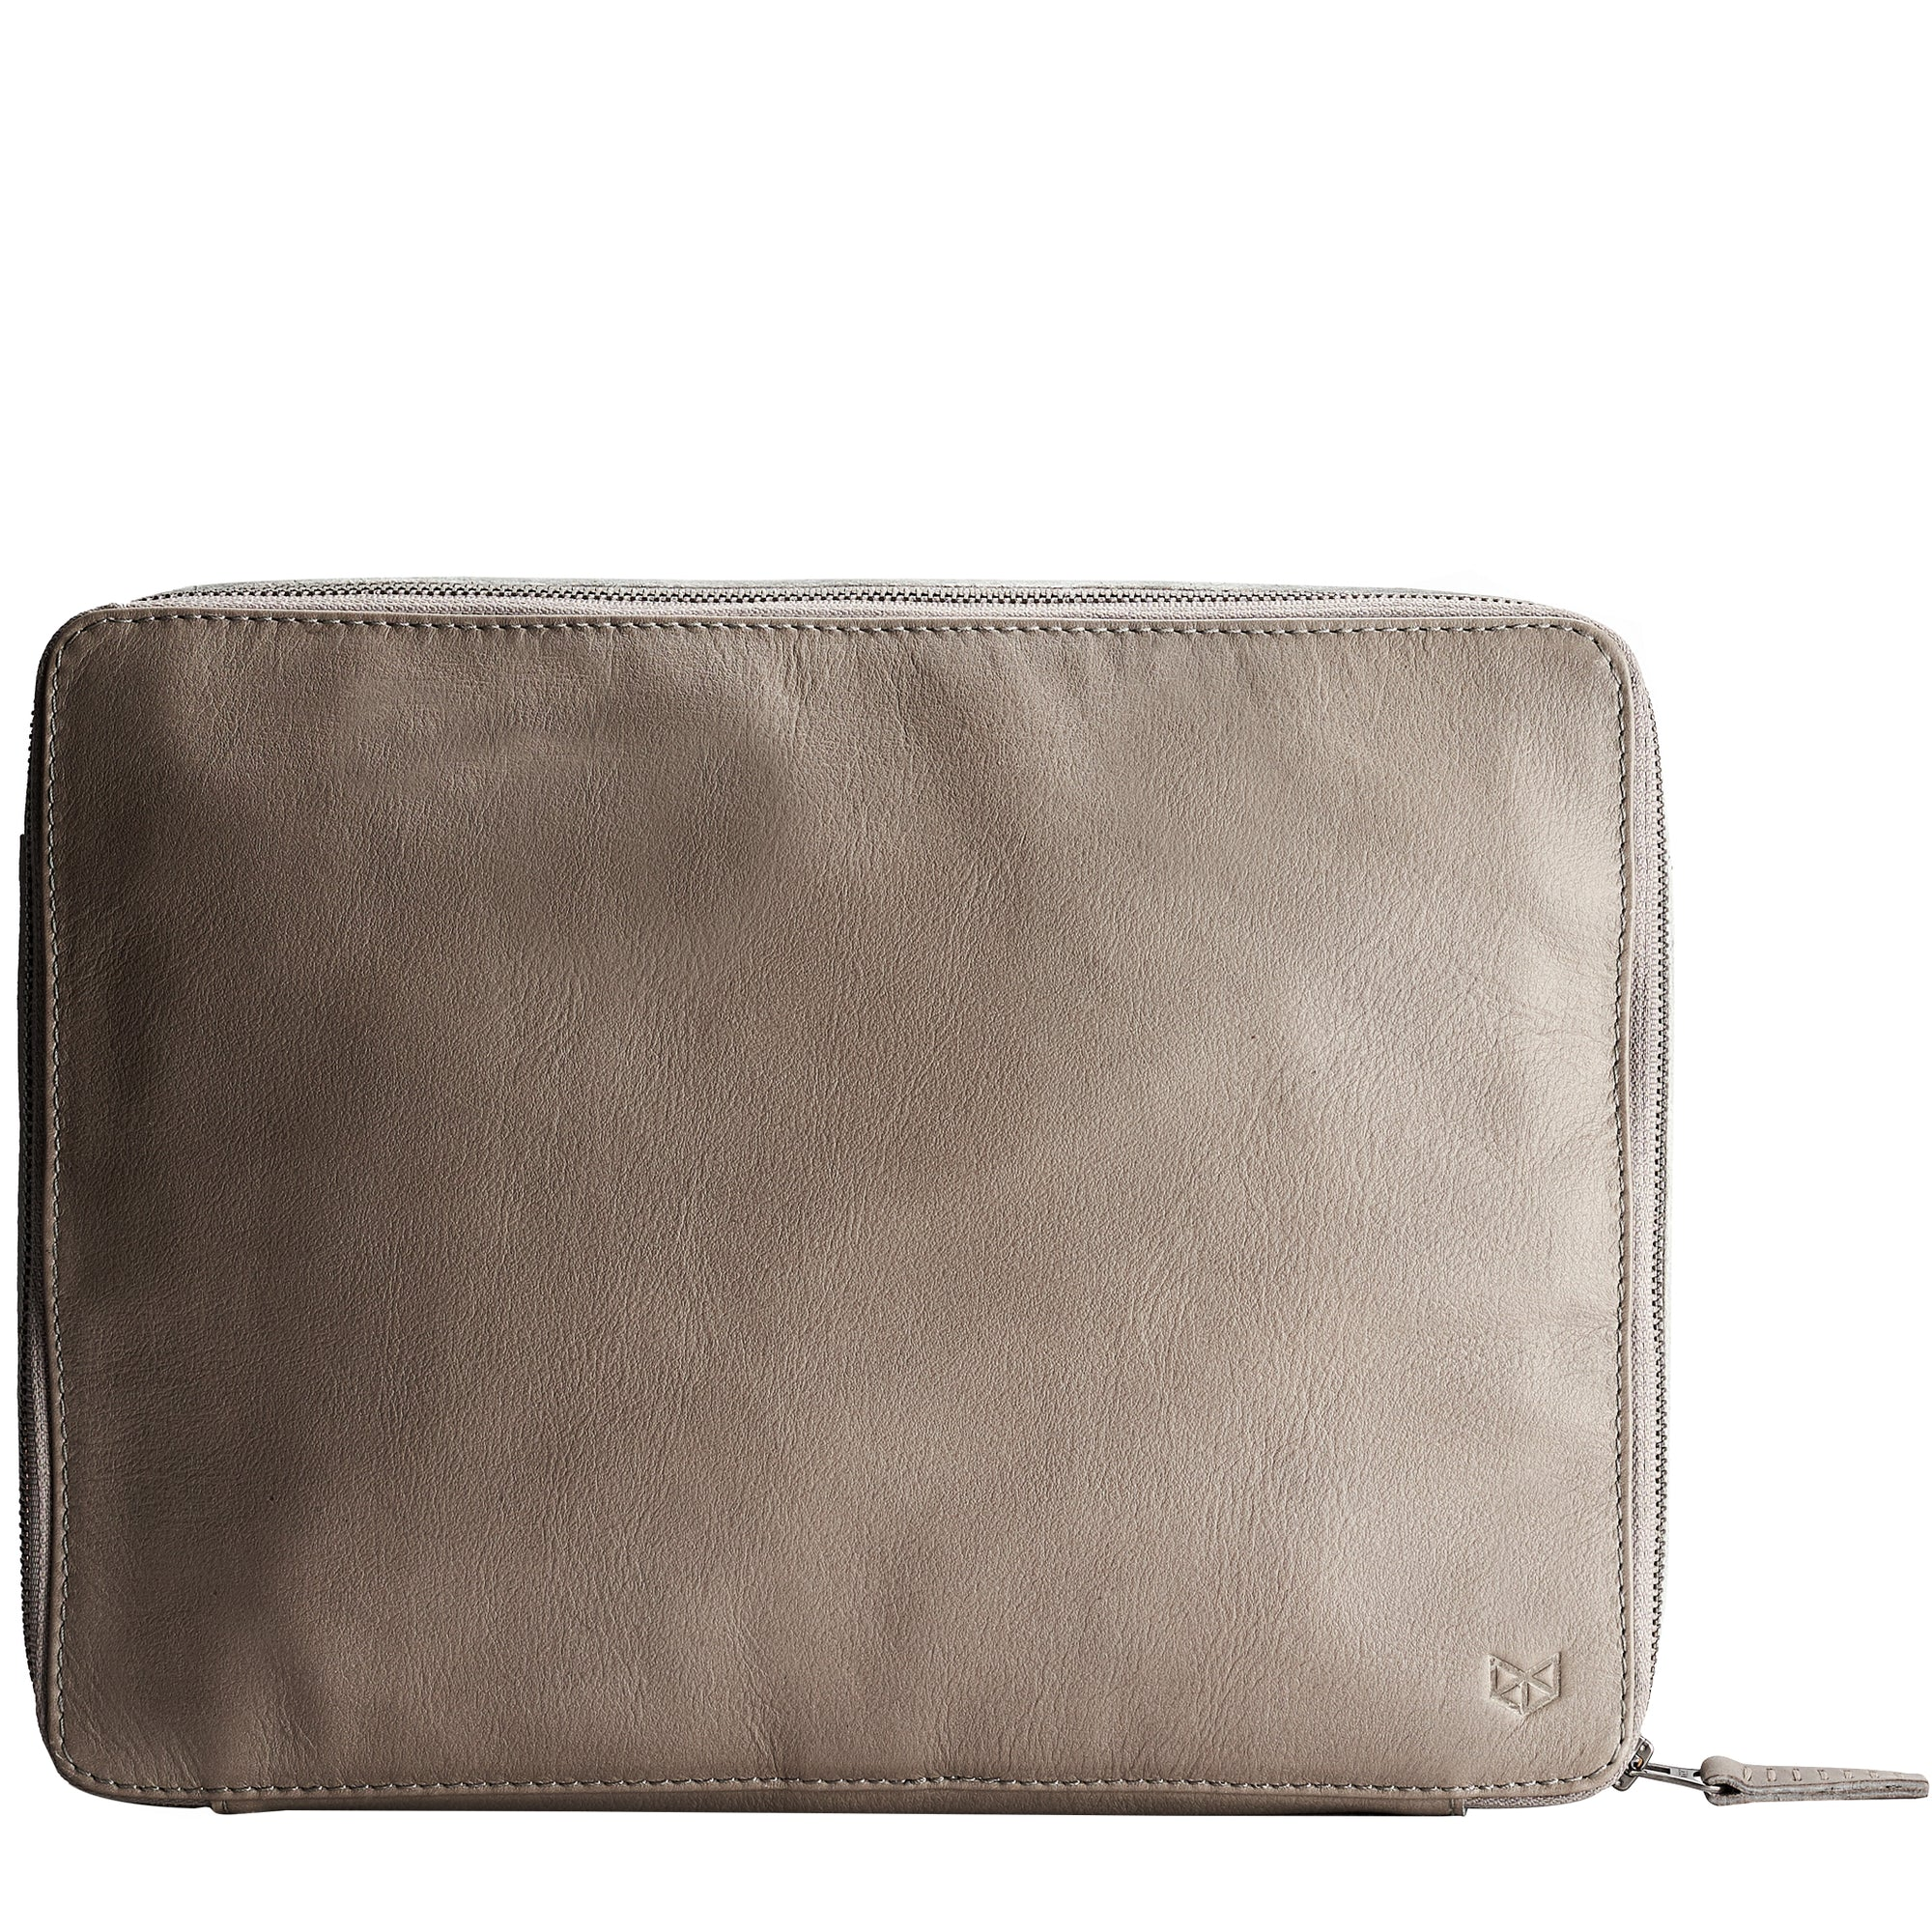 Grey leather gadget bag, tech dopp kit, electronic organizer. Fits iPad Pro with Apple pencil.